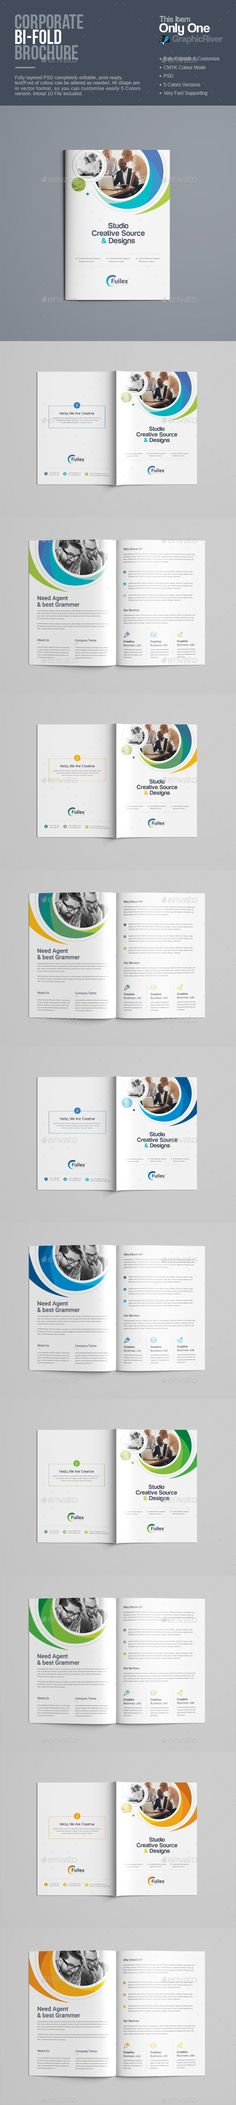 Progress - Corporate Brochure 14 pages - Corporate Brochures - free company profiles template